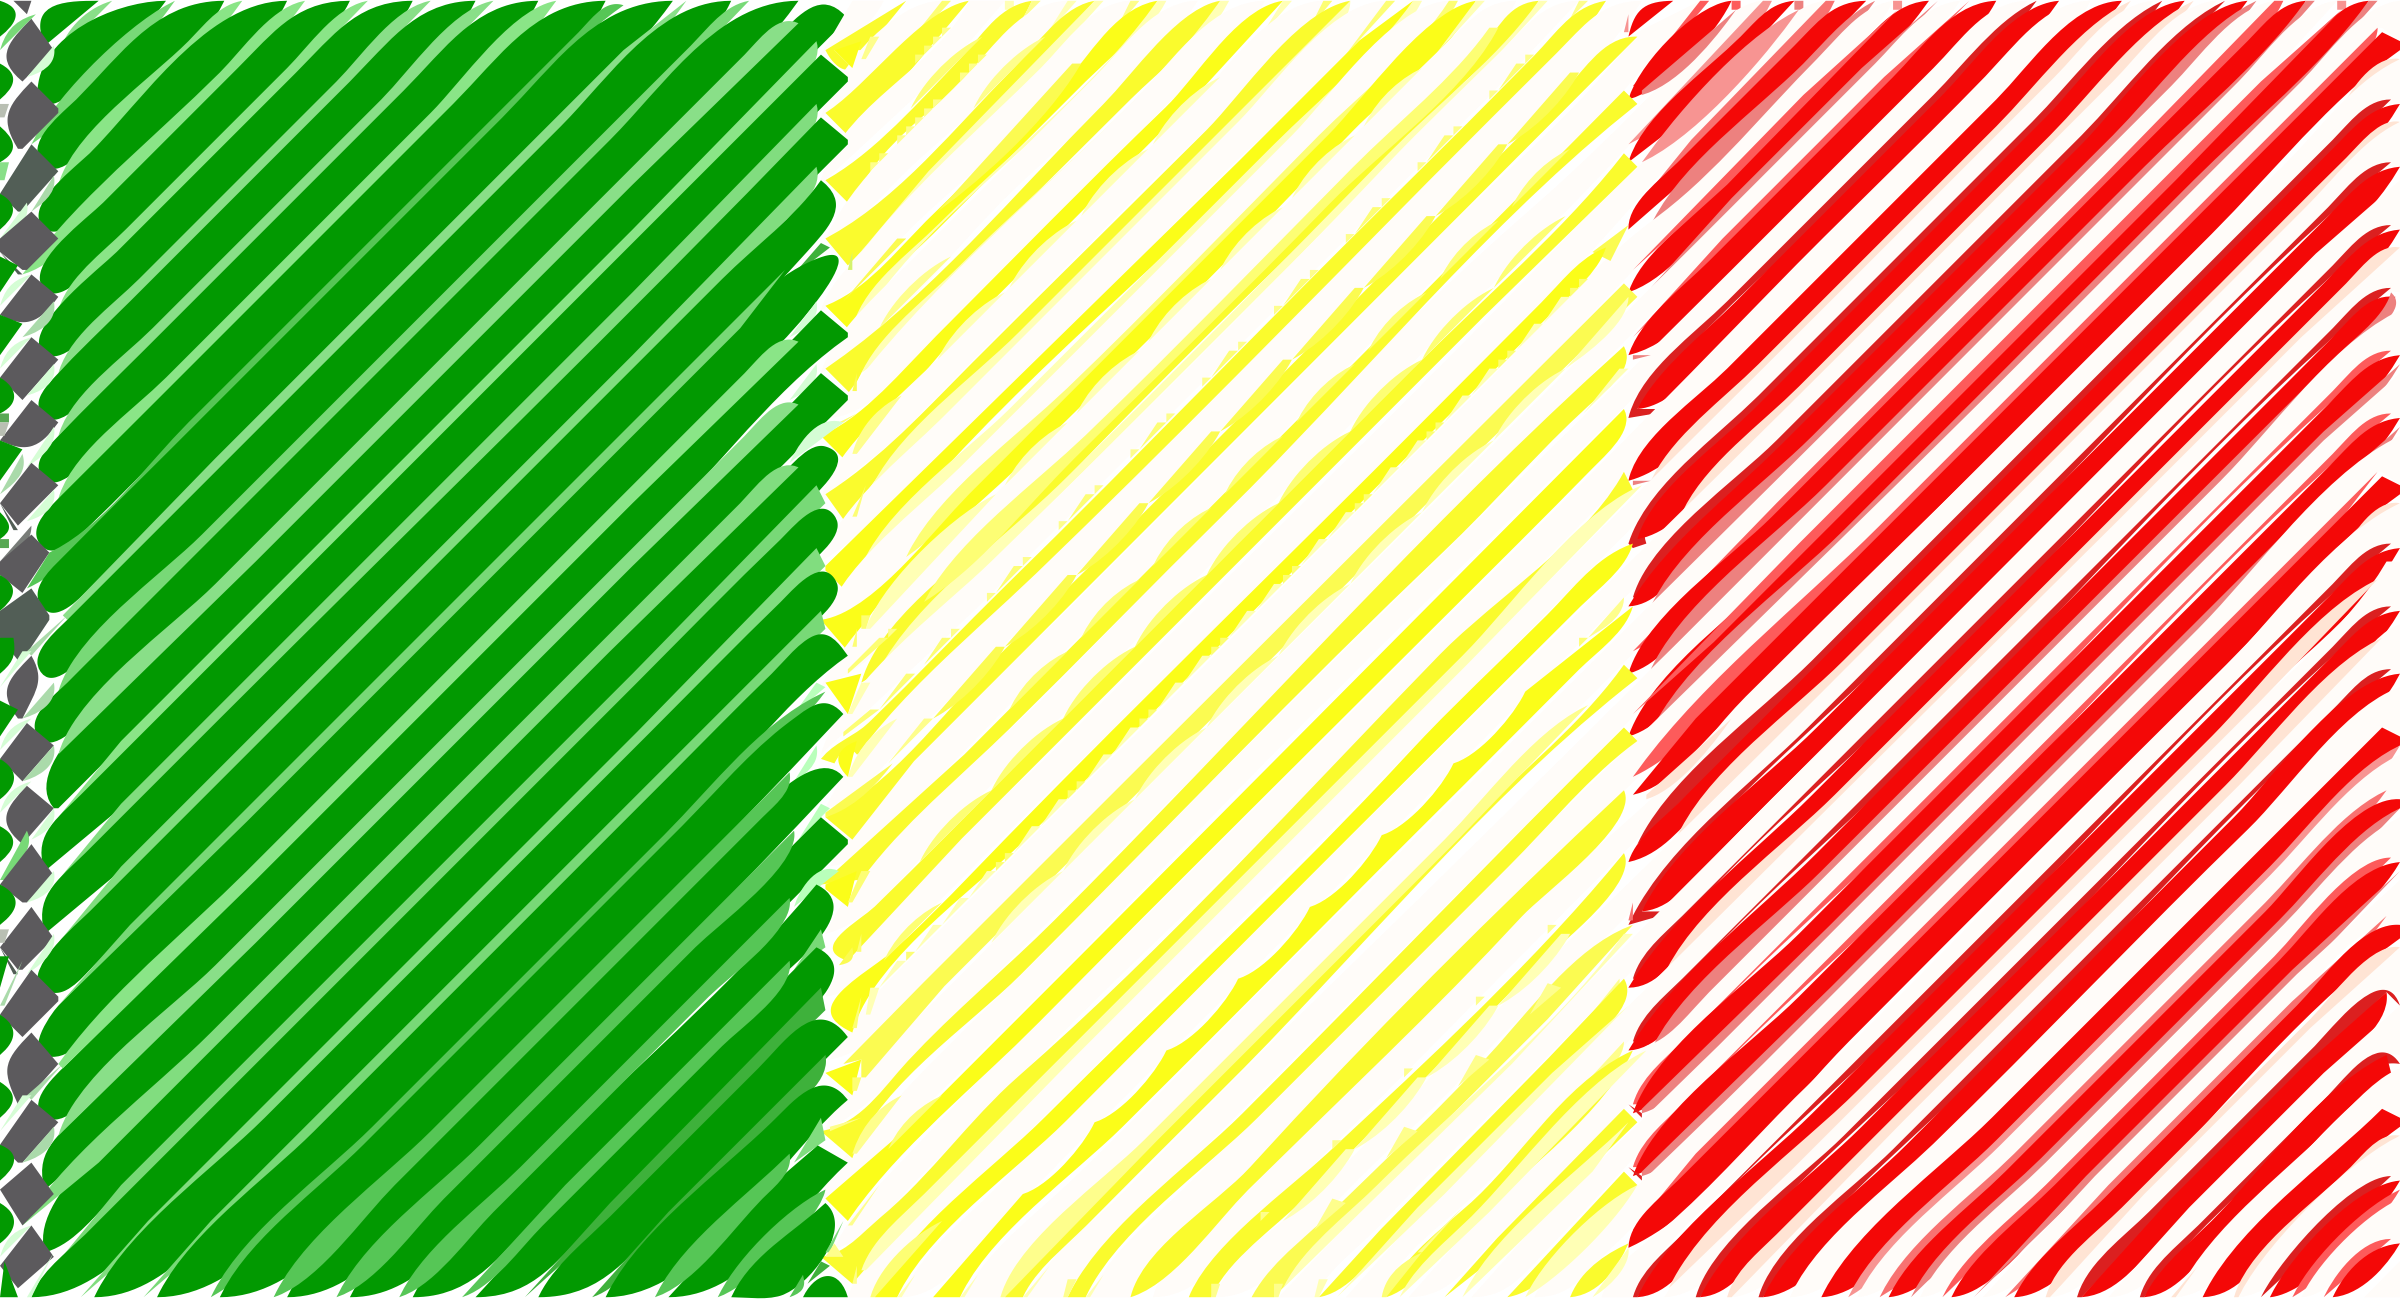 Mali flag linear by Joesph